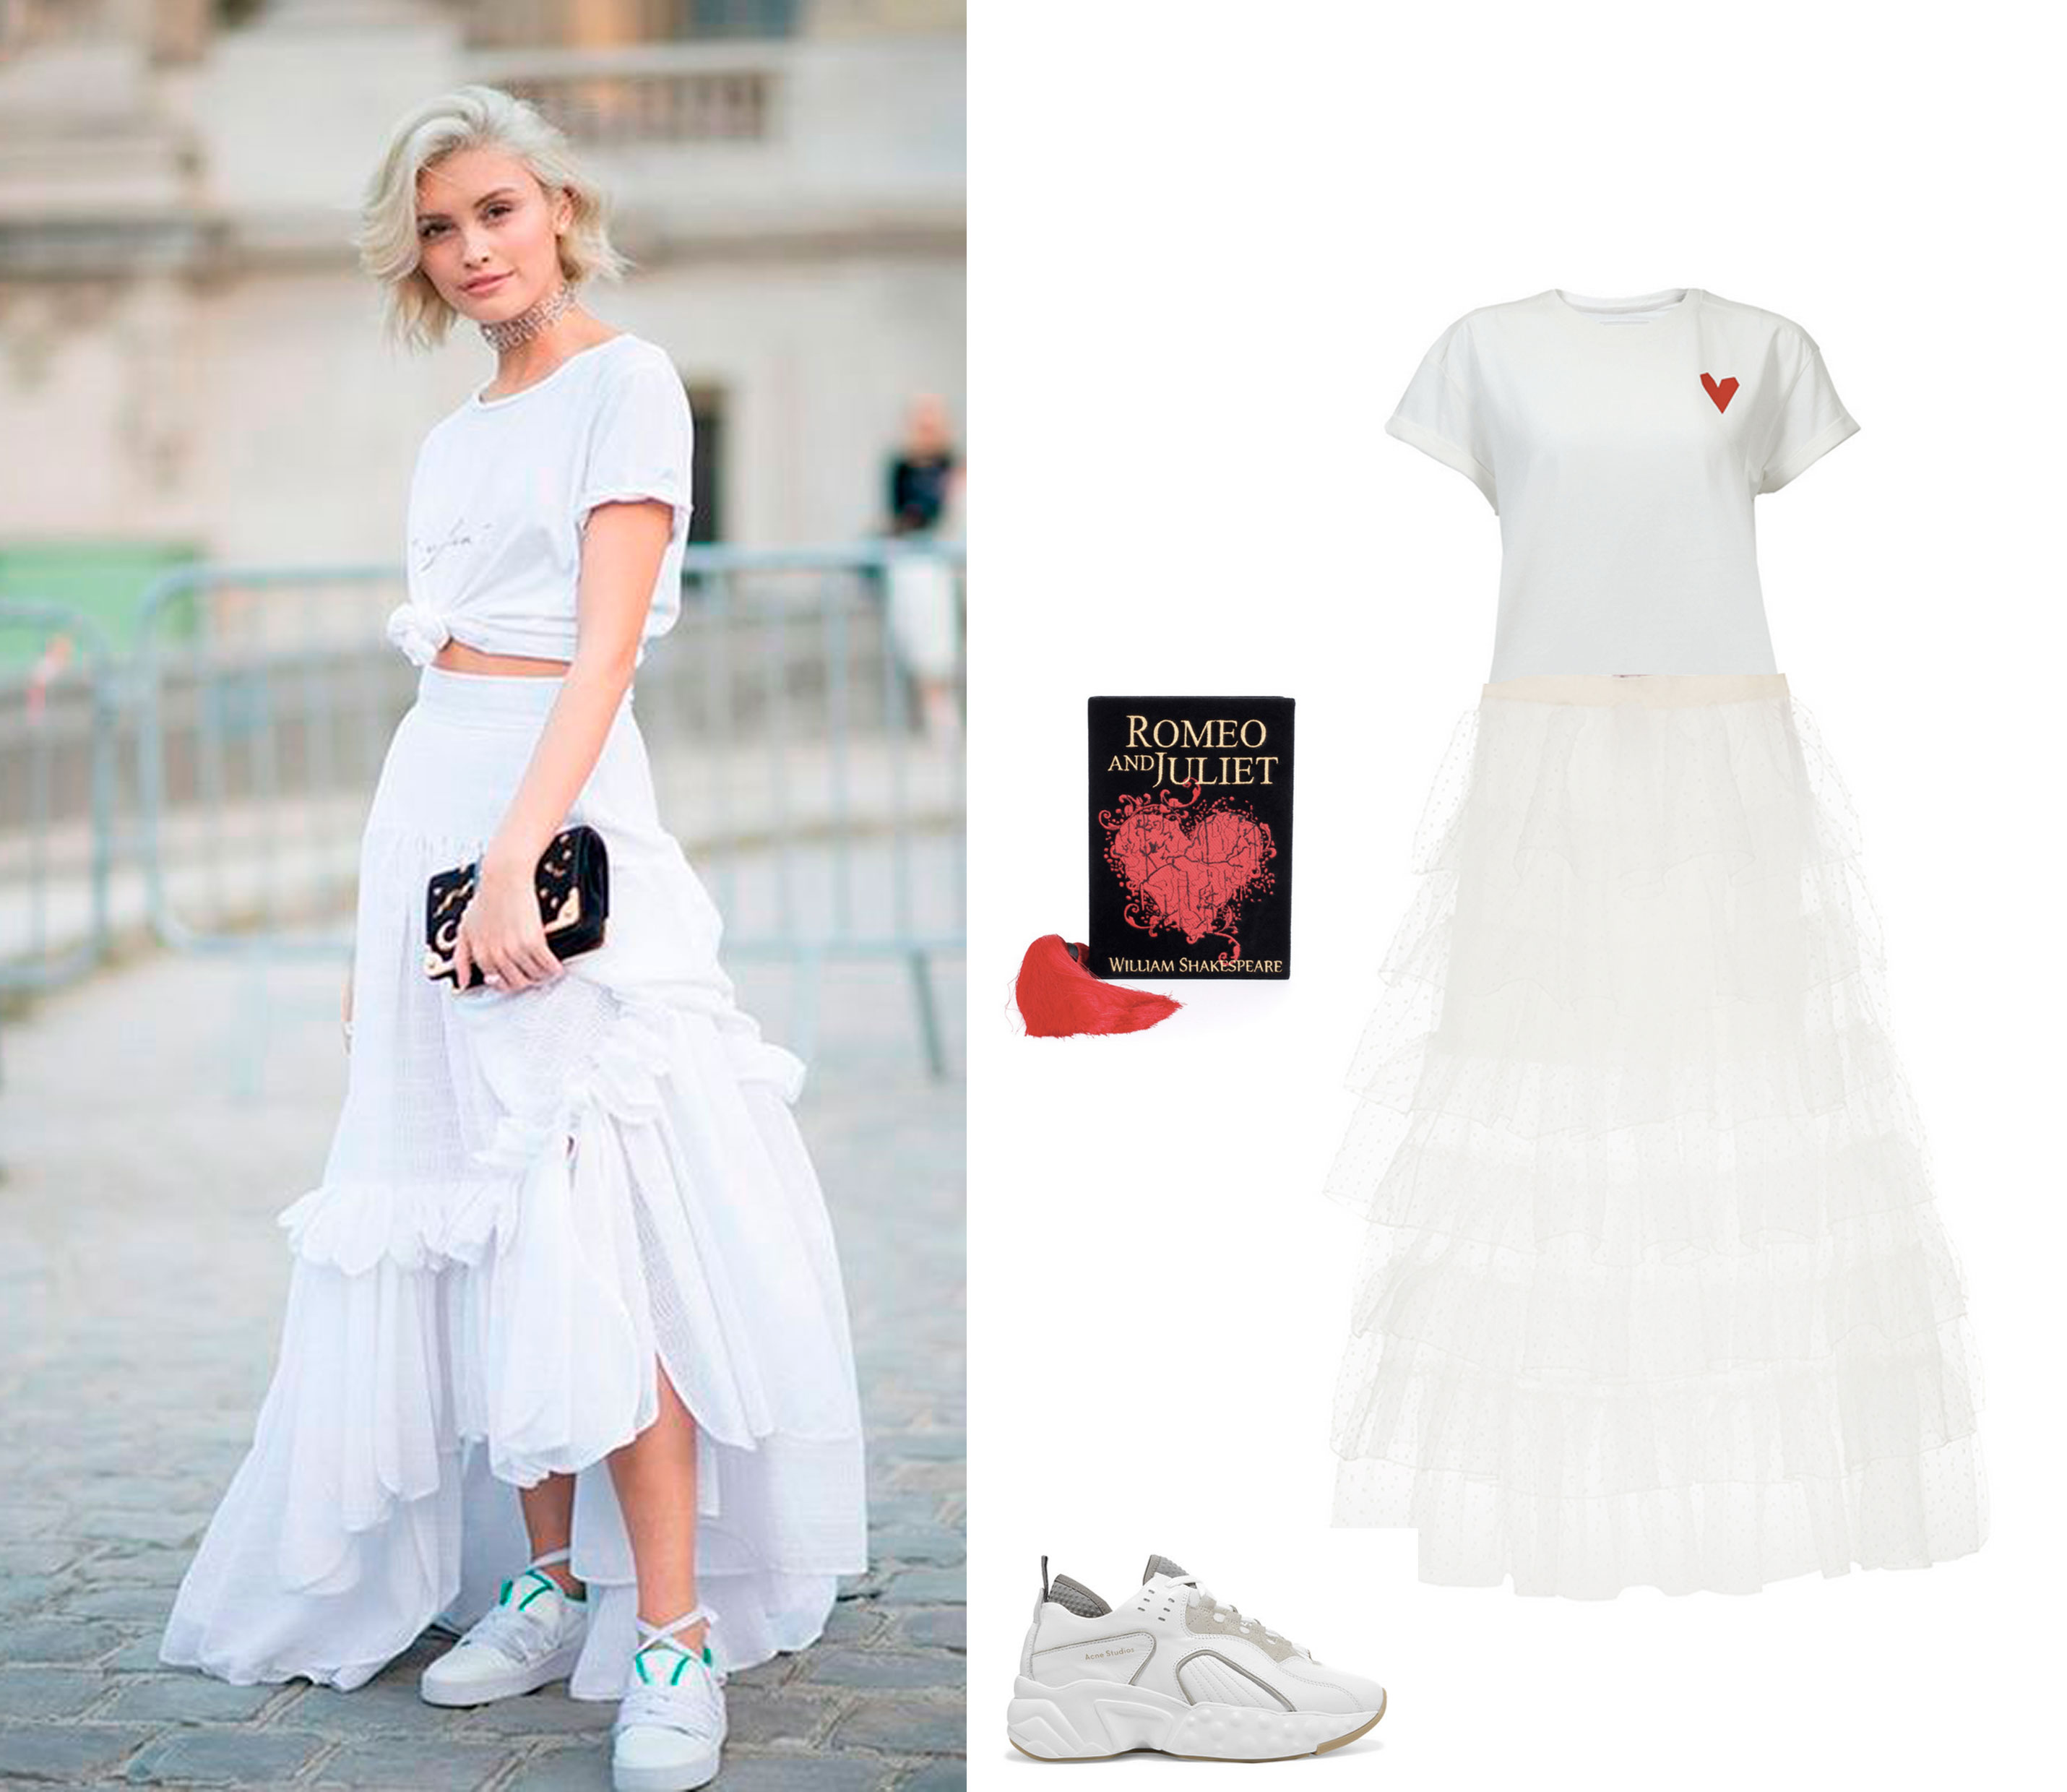 Total White summer looks